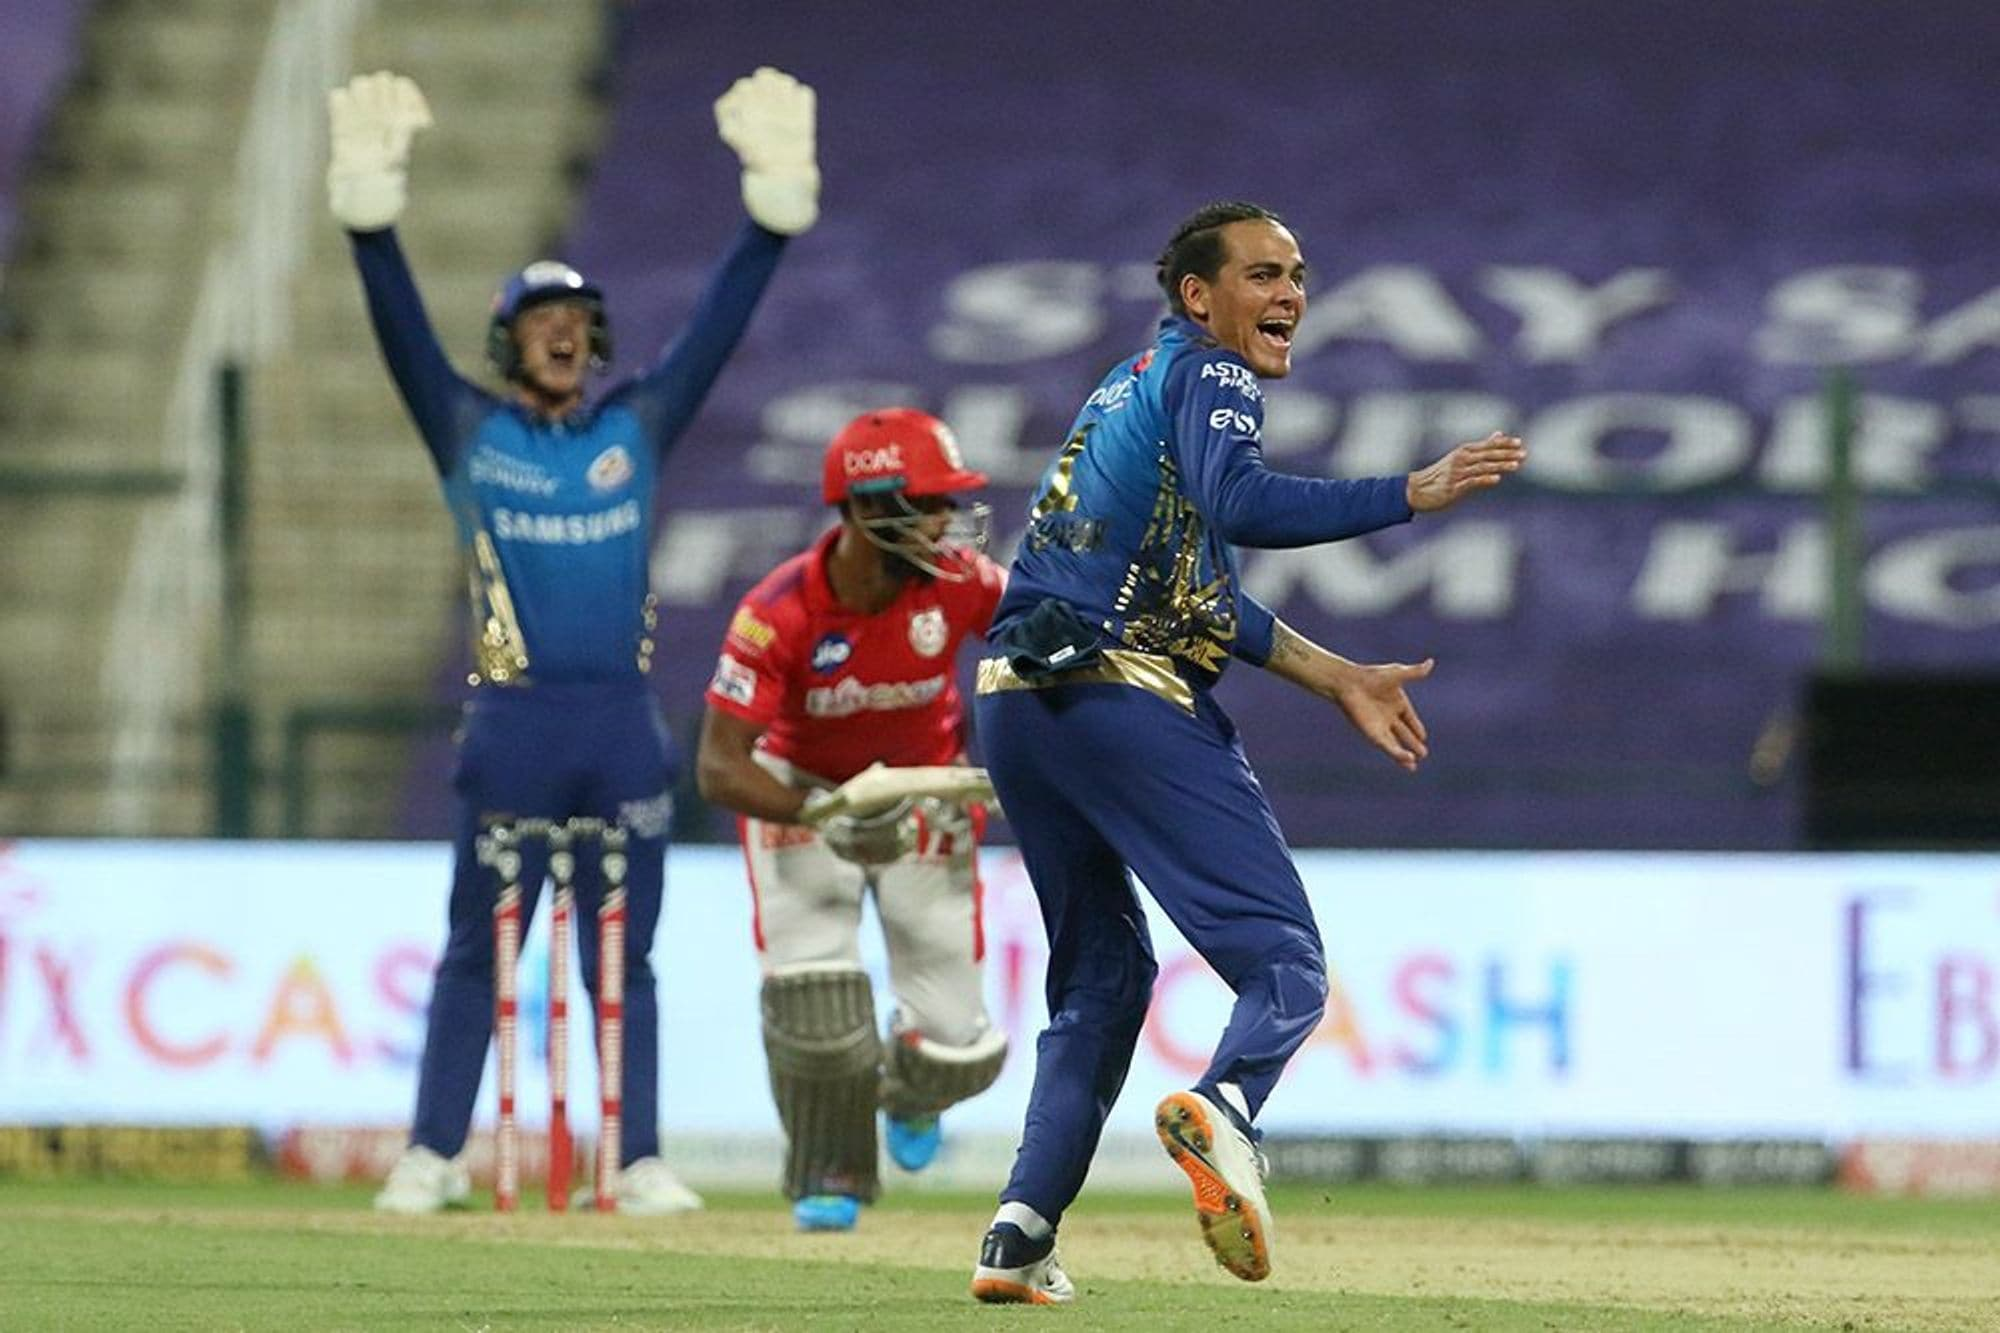 IPL 2020: In Pics, Kings XI Punjab vs Mumbai Indians, Match 13 at Abu Dhabi